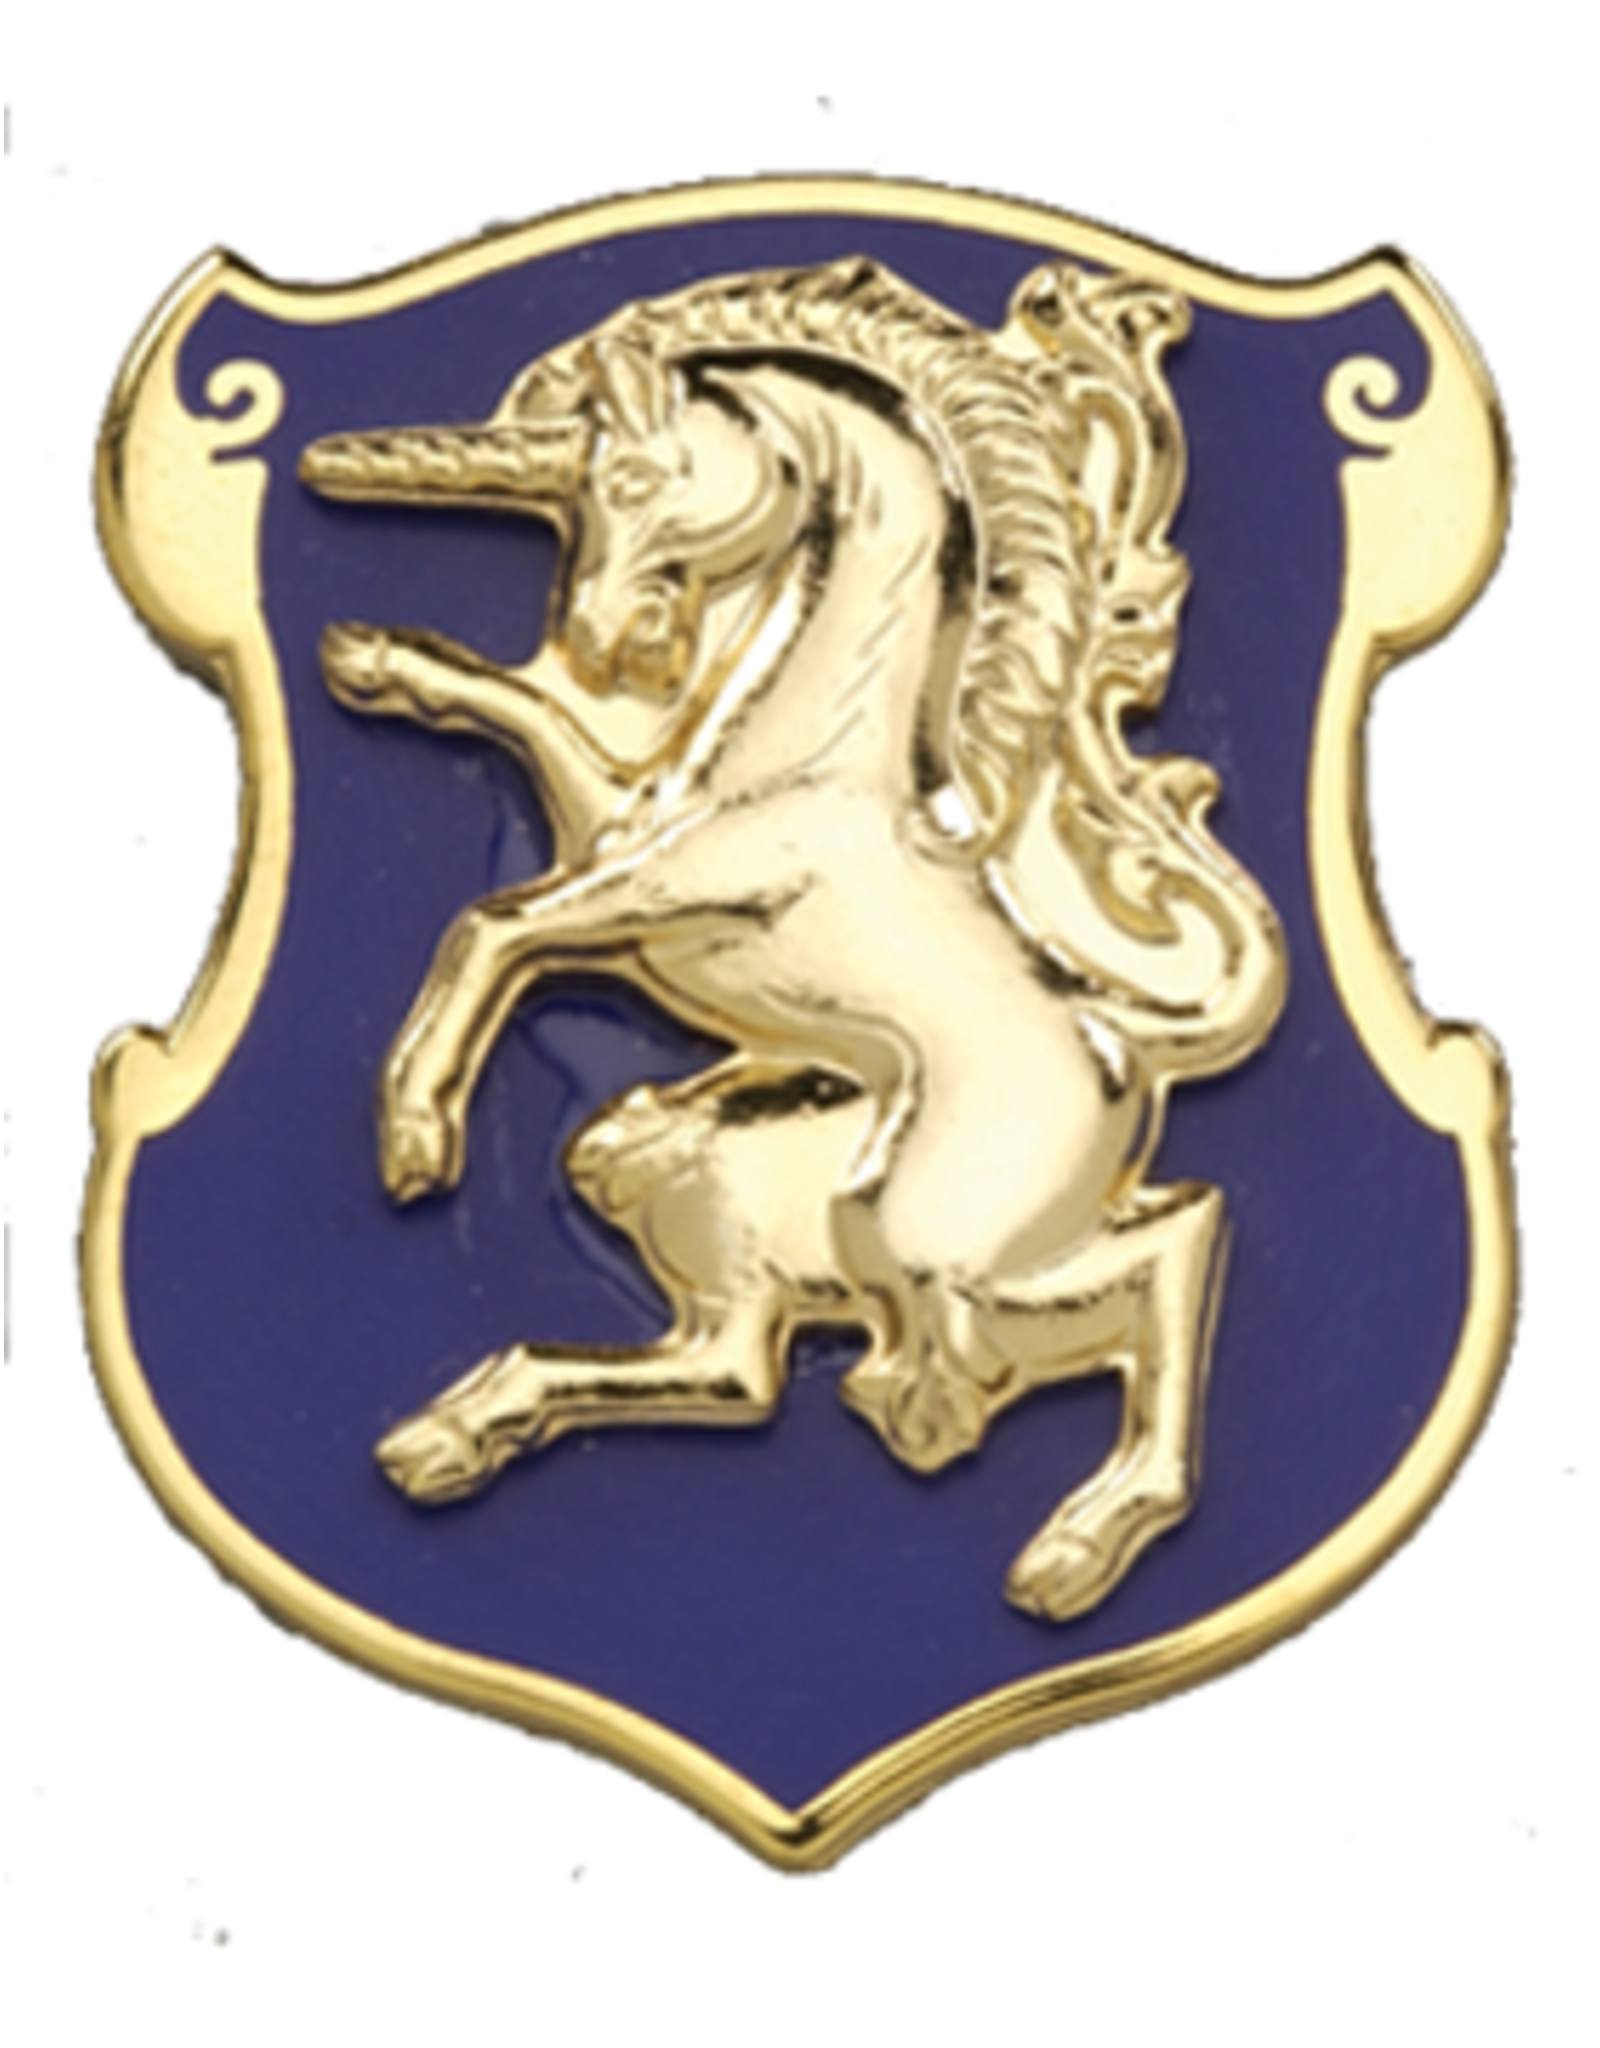 6th Cavalry Unit Crest